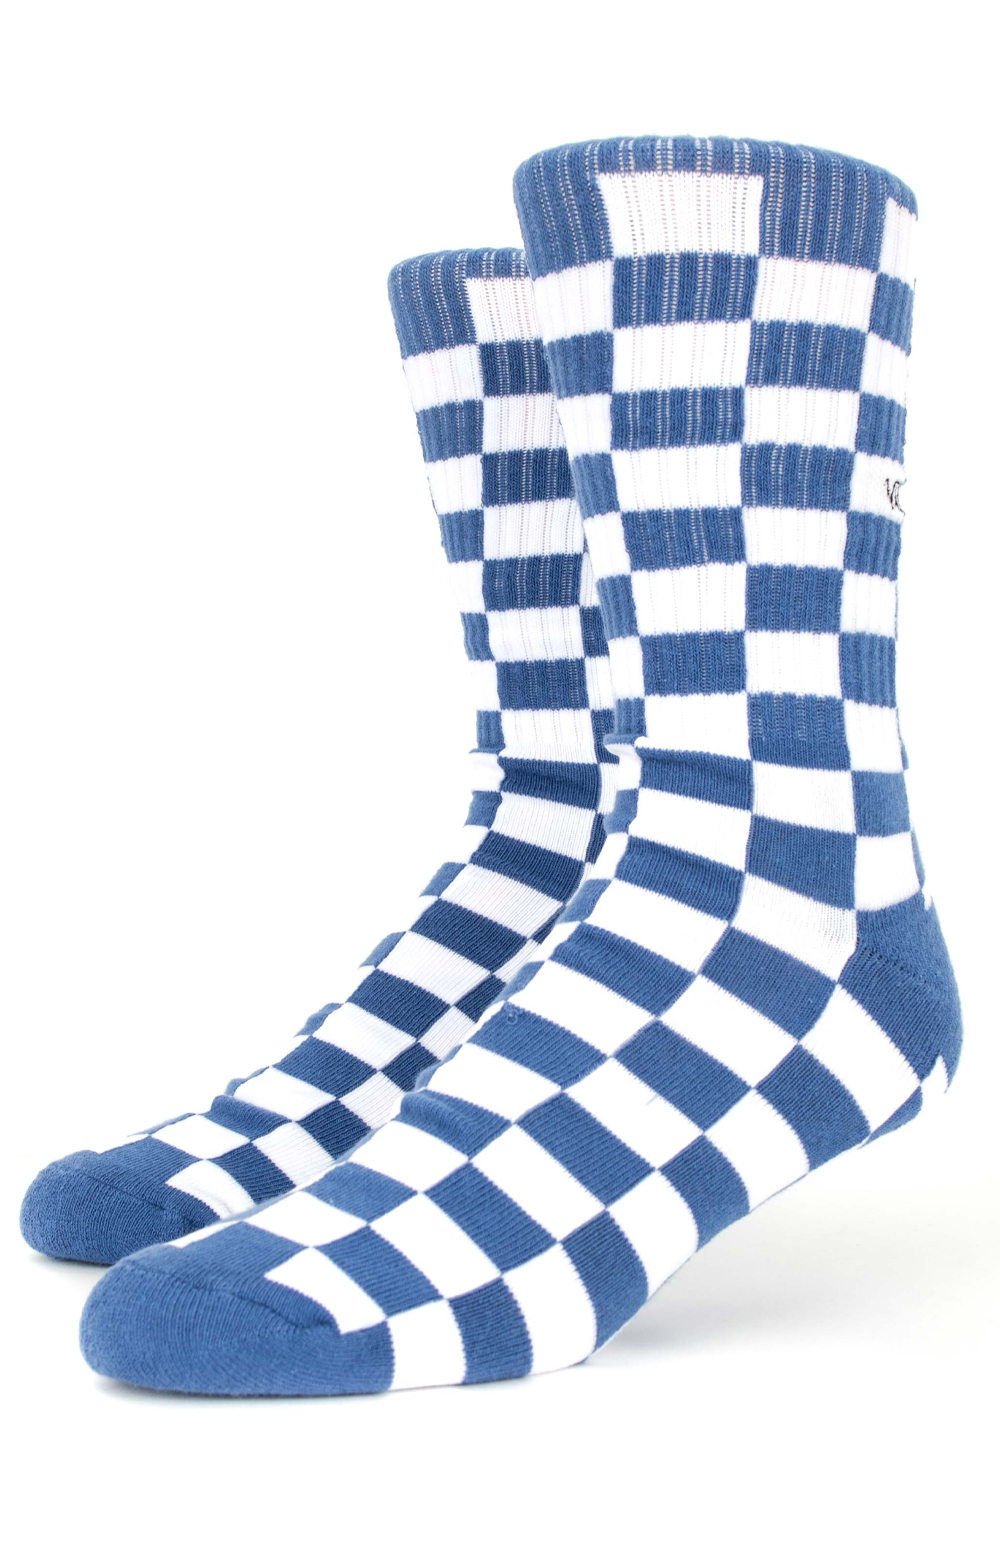 c1a6d6a15de7b8 Checkerboard Crew Socks - Blue White